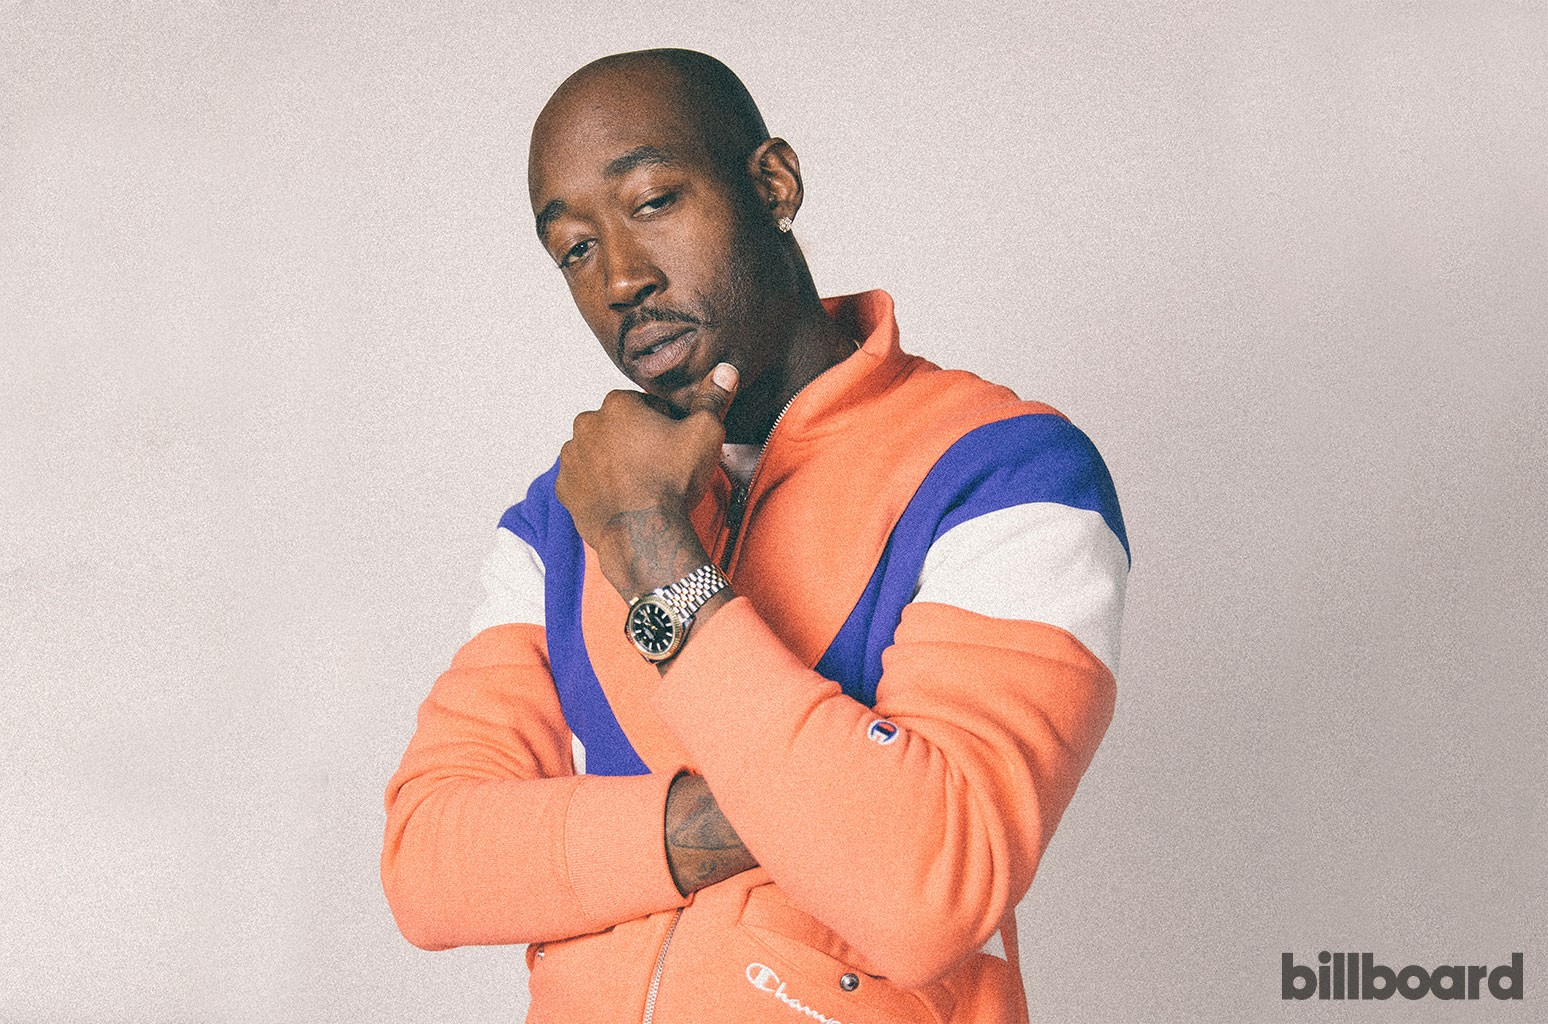 Freddie Gibbs photographed on March 13, 2019.